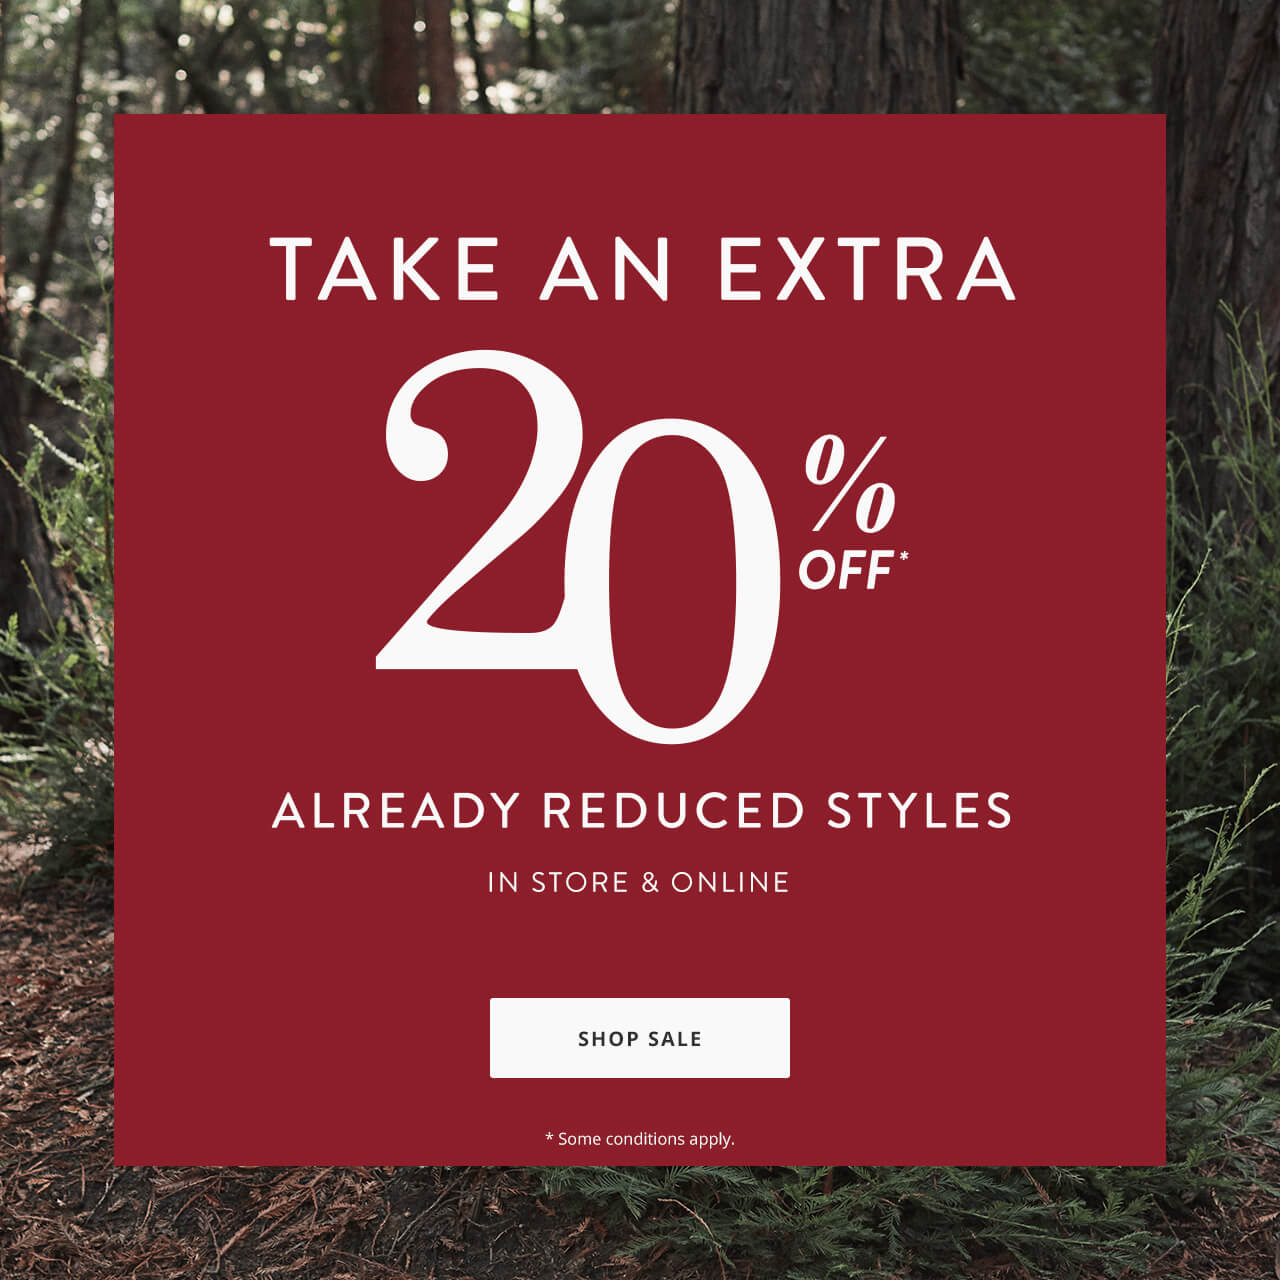 Take an Extra 20% Off*